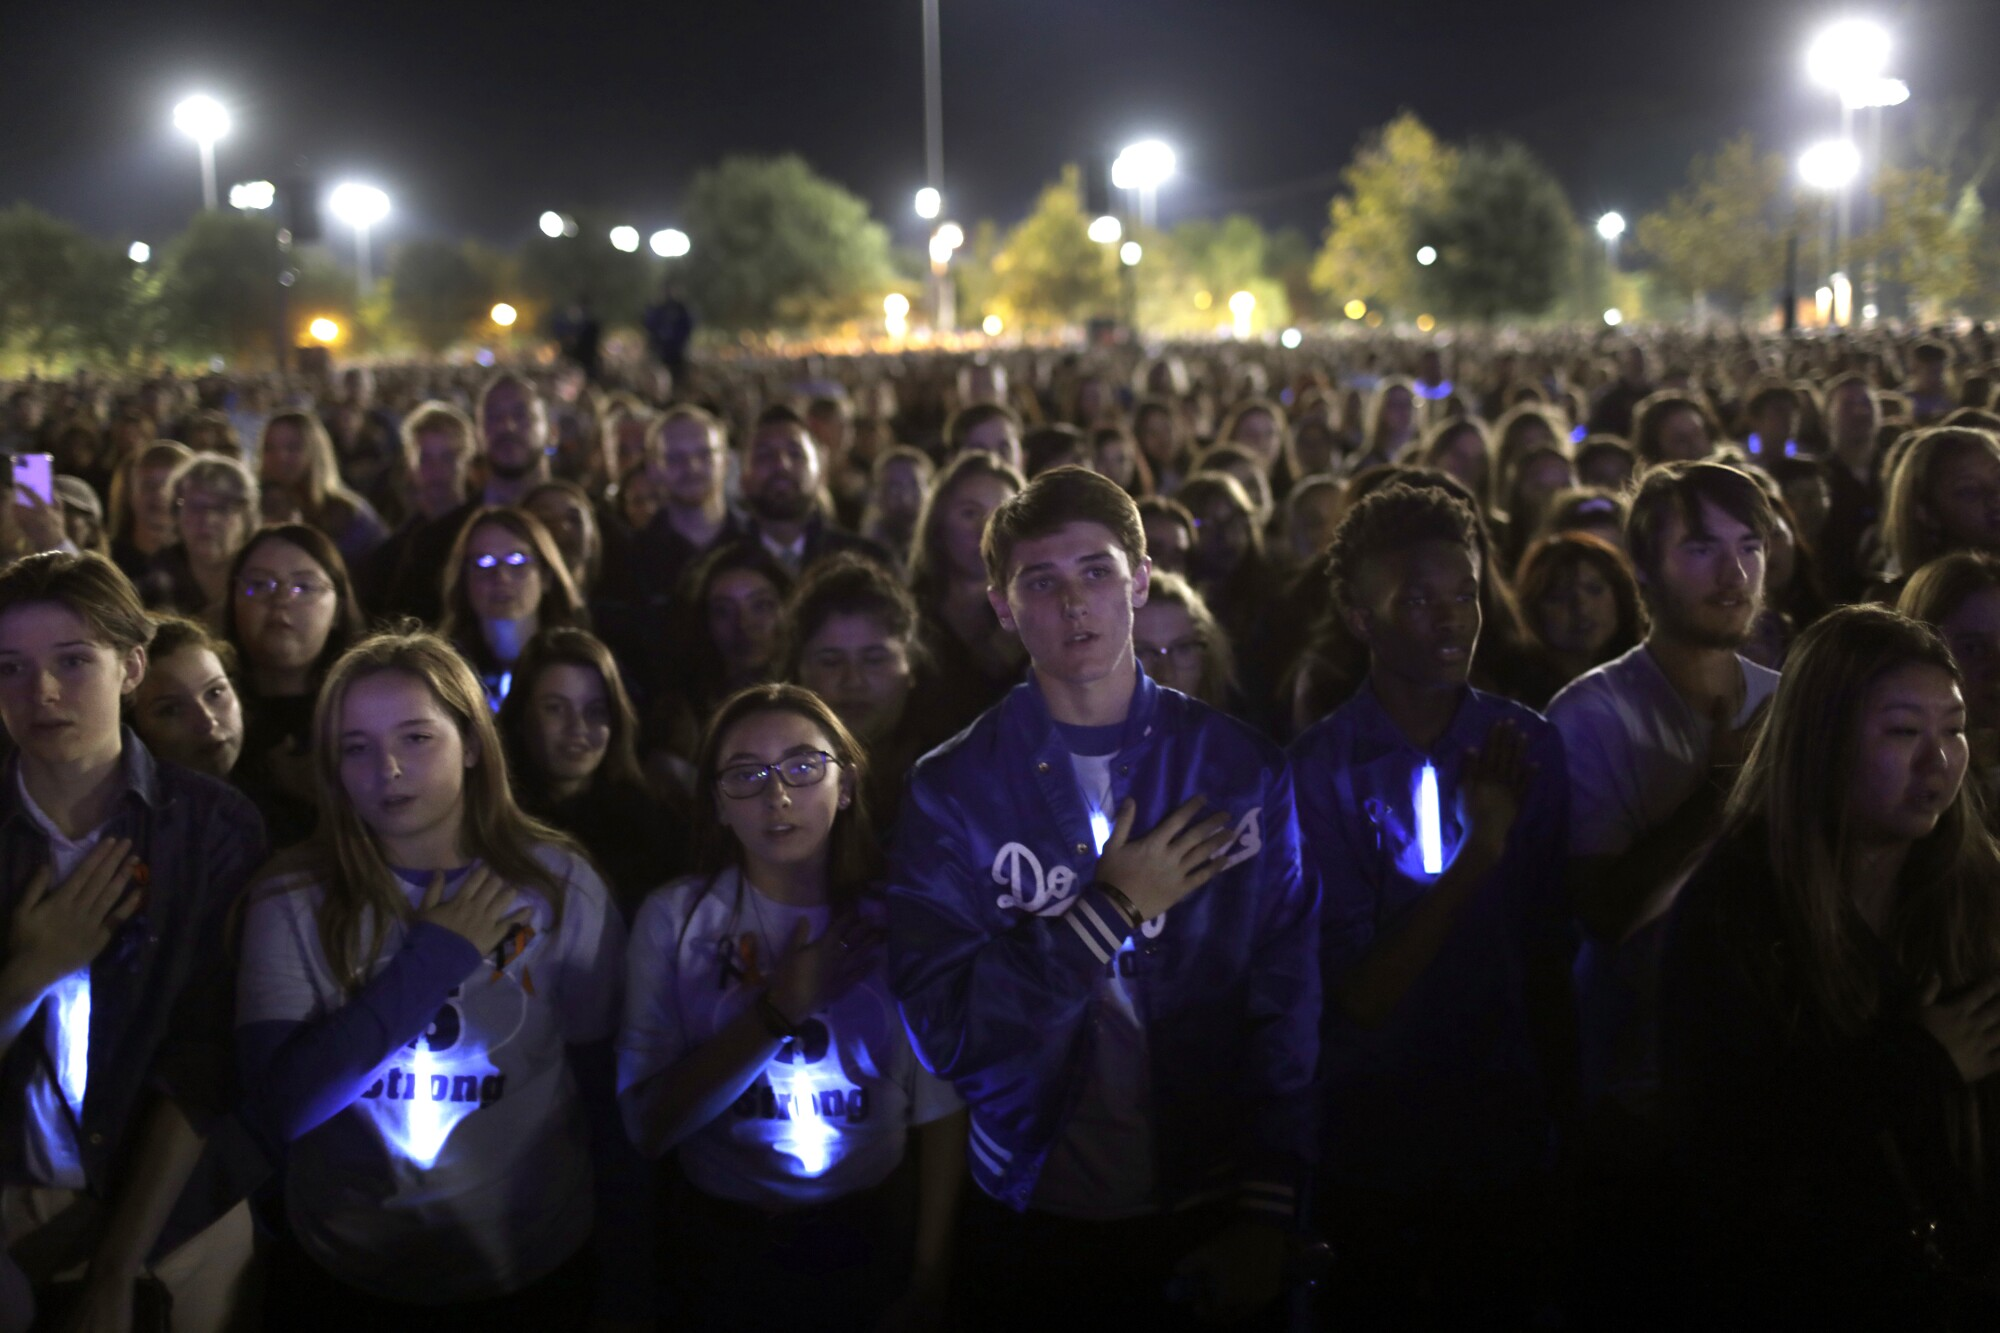 Students gathered in November at Central Park in Santa Clarita to remember those killed in a shooting at Saugus High School earlier in the month.